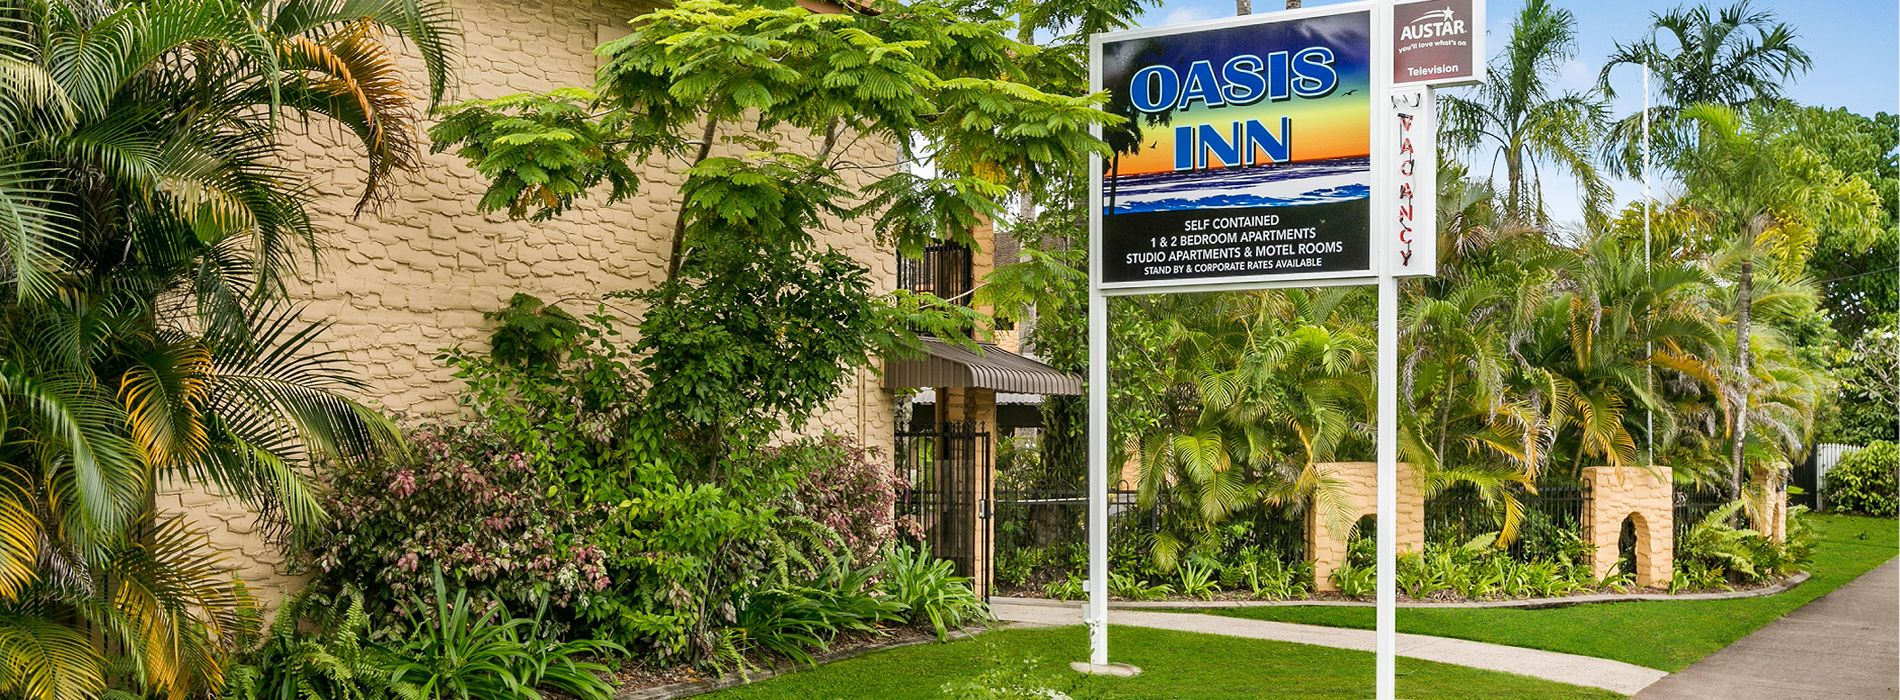 Cairns Holiday Apartments Oasis Inn Entrance